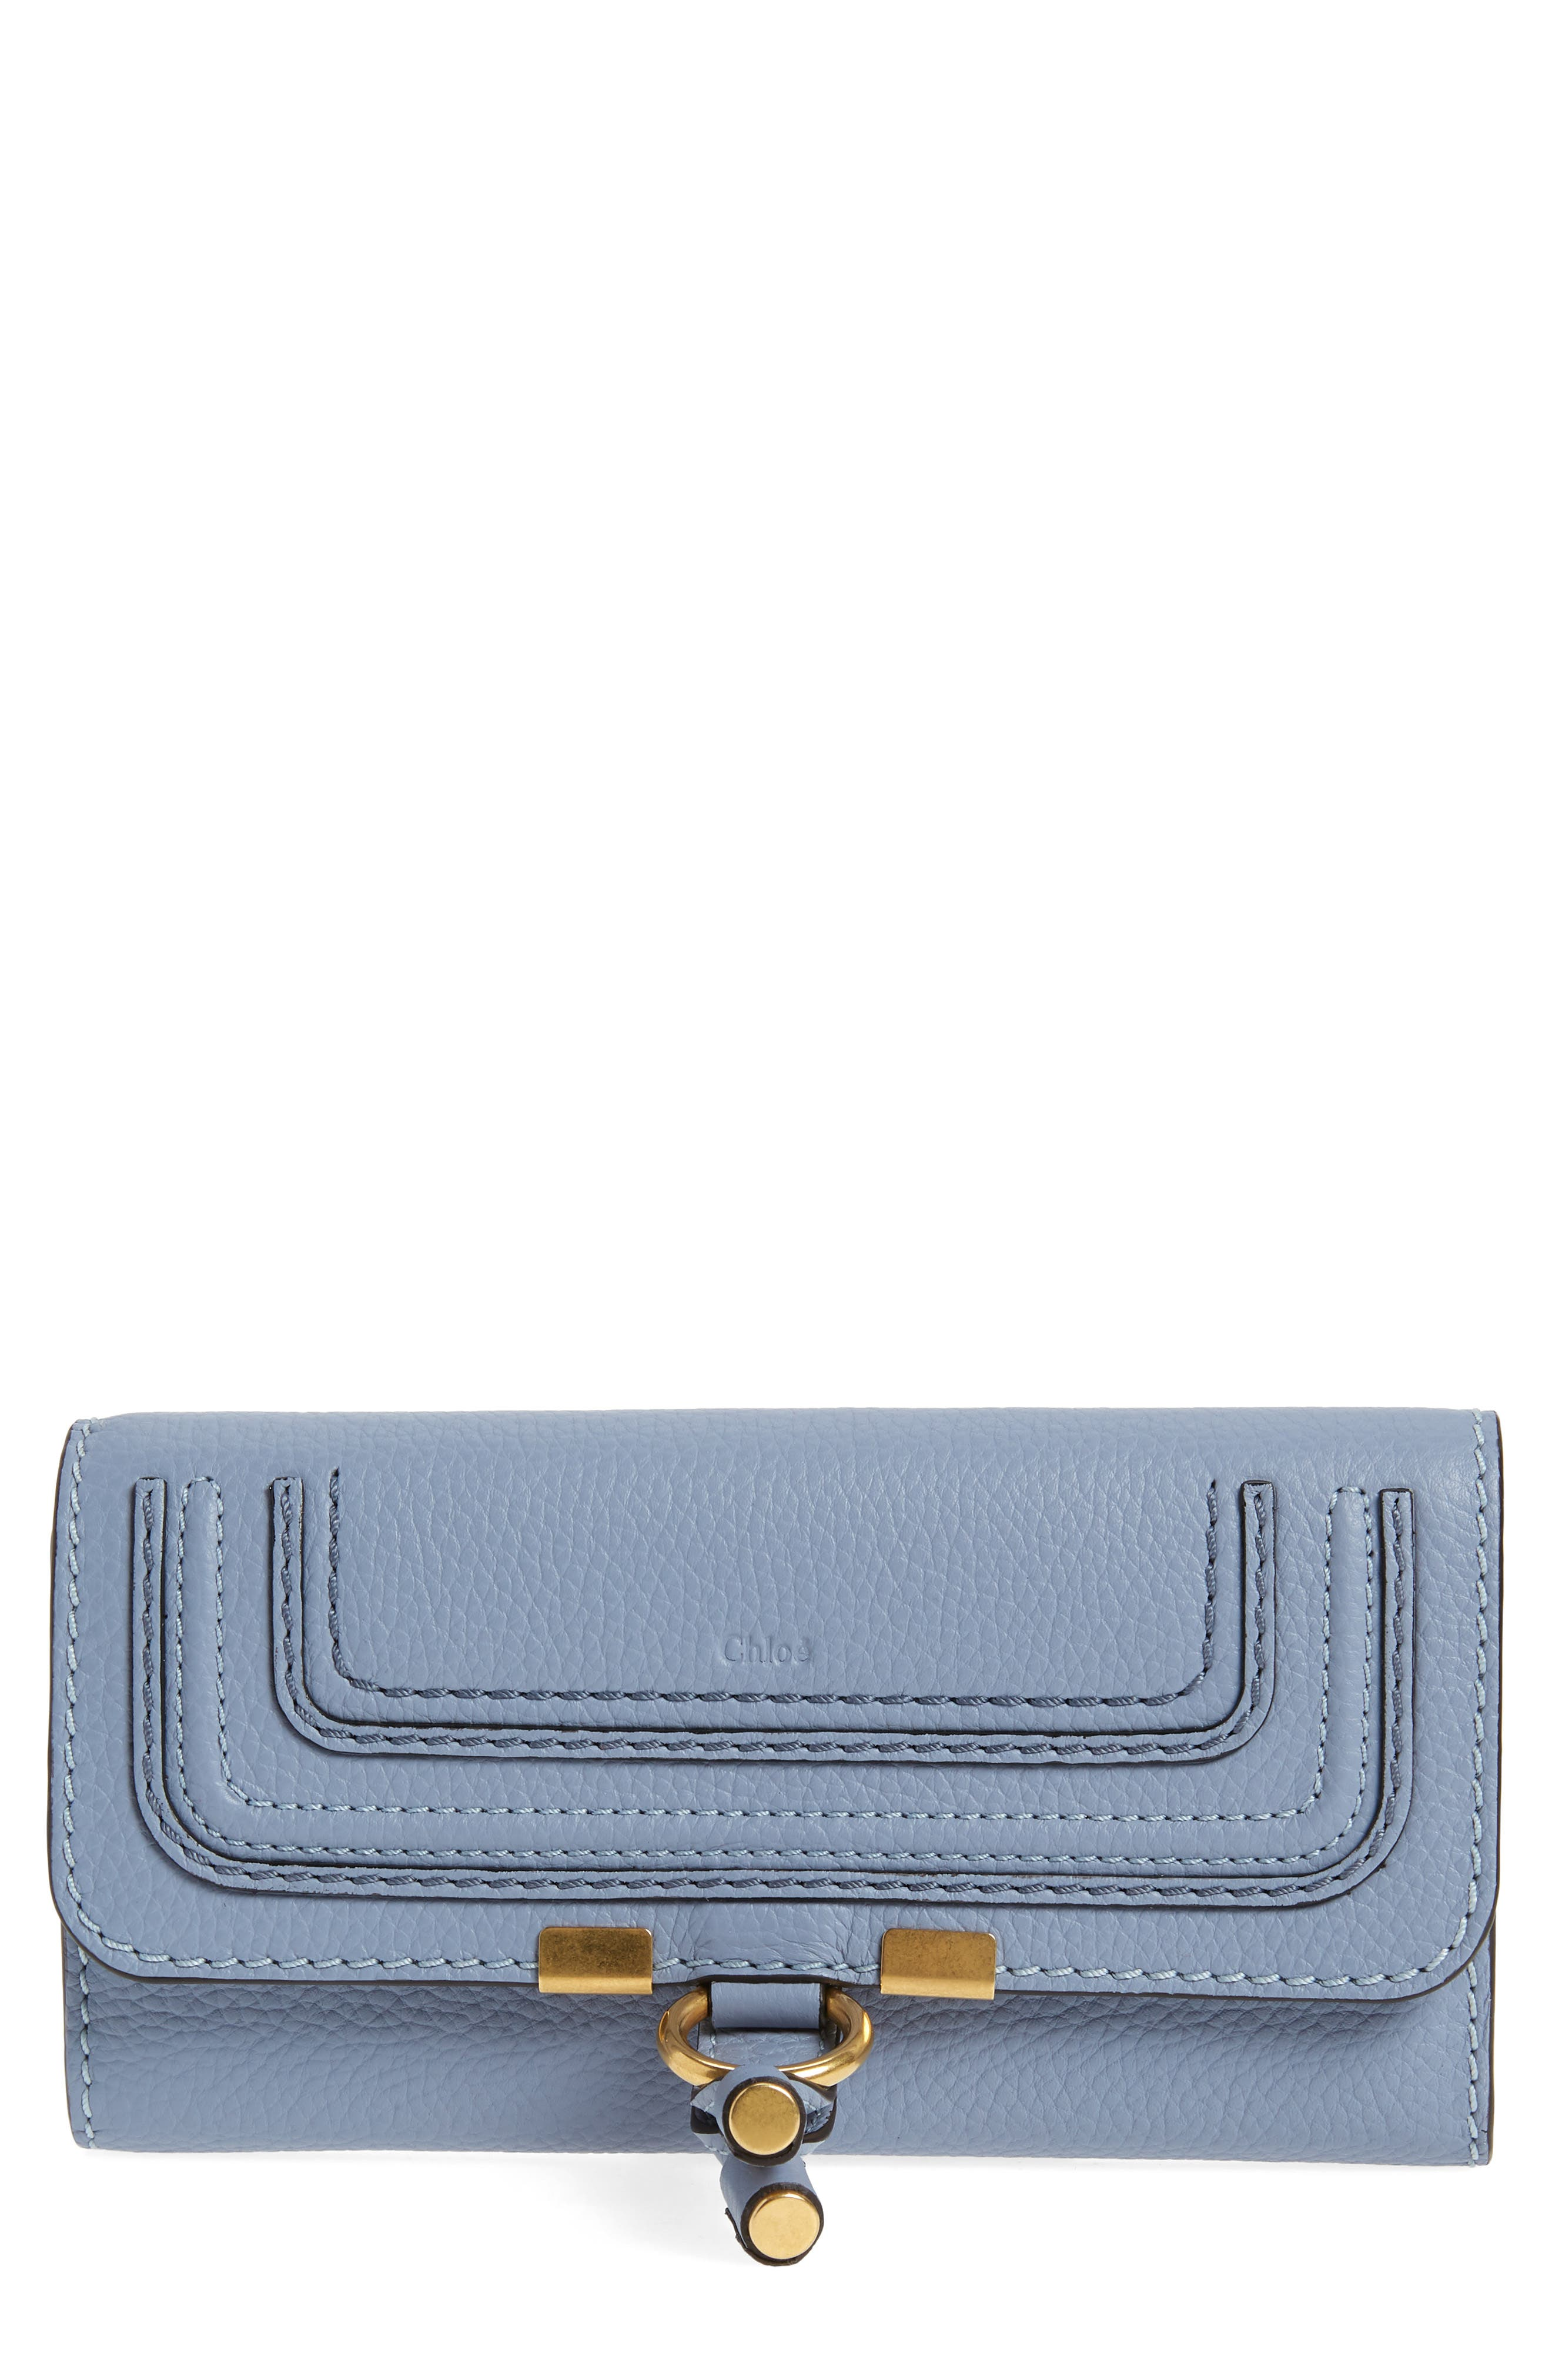 Marcie - Long Leather Flap Wallet,                             Main thumbnail 1, color,                             WASHED BLUE